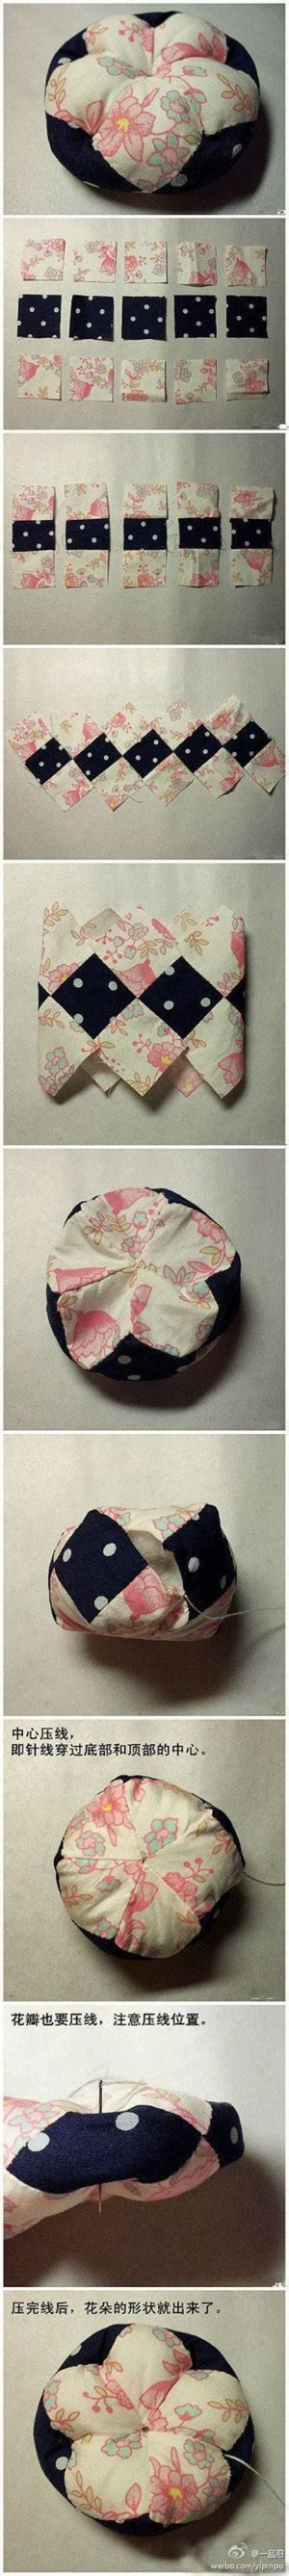 How To Hump A Pillow Step By Step by How To Make Flower Shape Pillow Step By Step Diy Tutorial